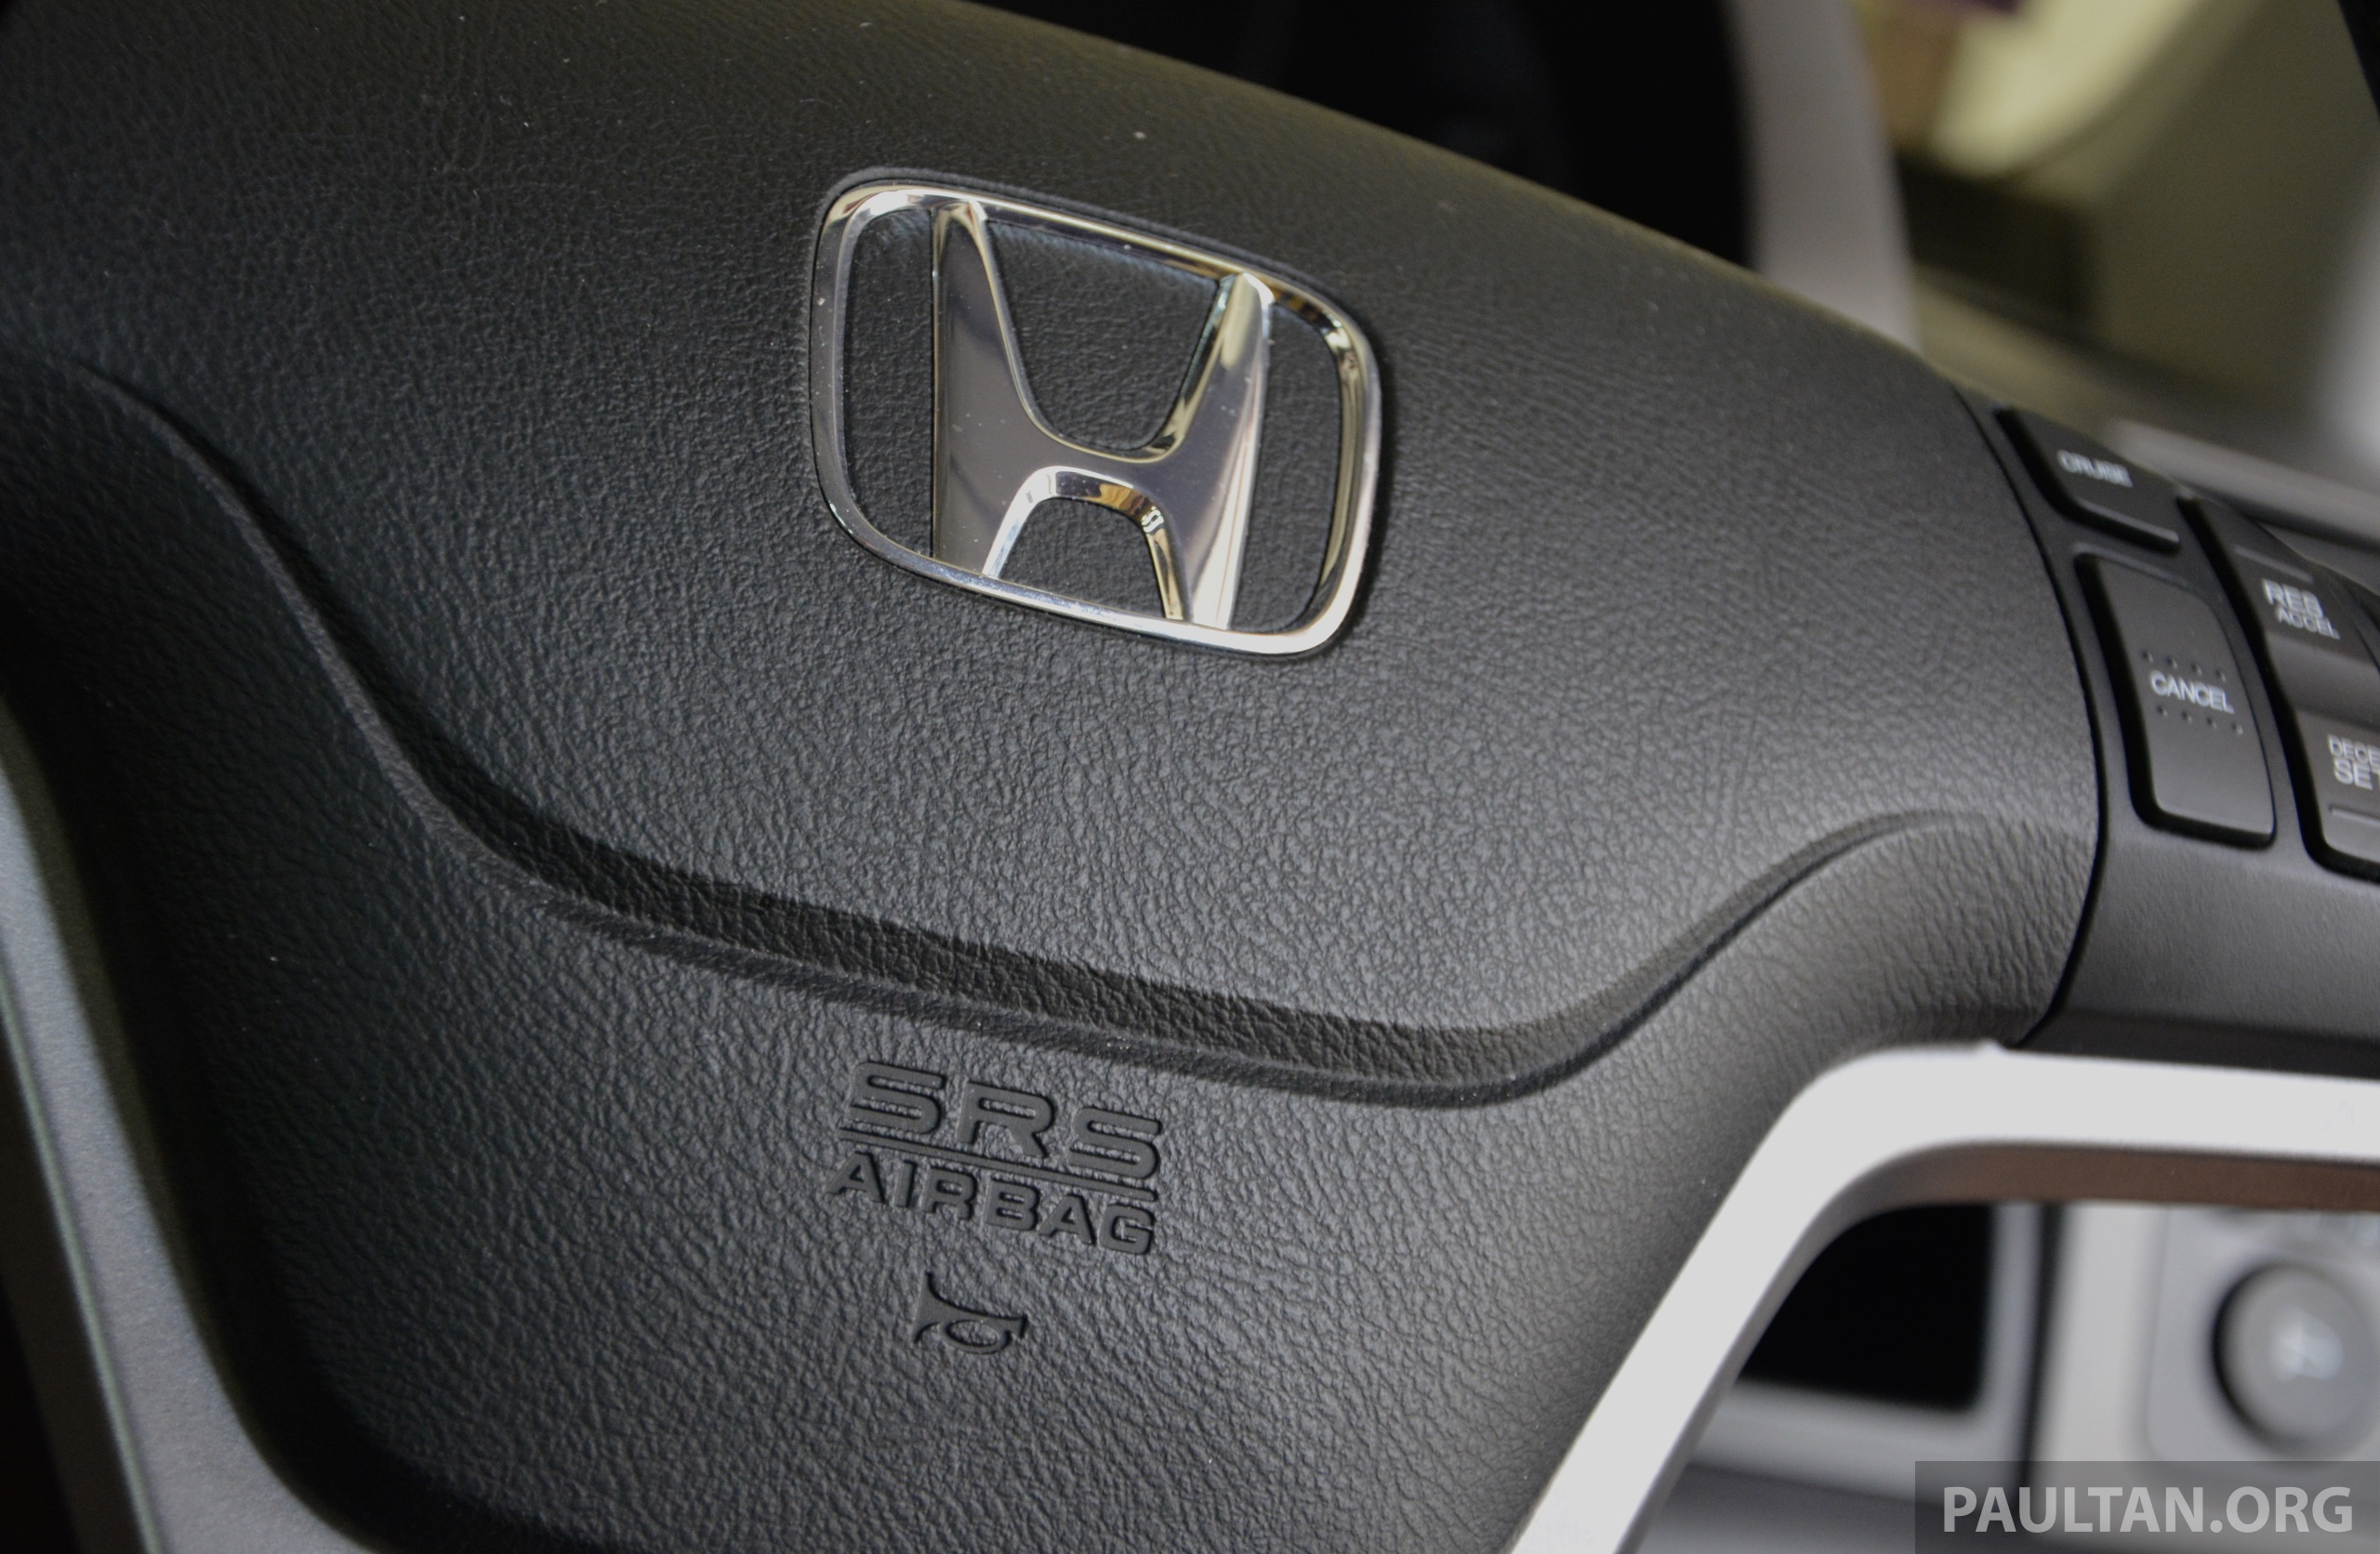 honda malaysia recalls 87 182 vehicles over takata airbag. Black Bedroom Furniture Sets. Home Design Ideas